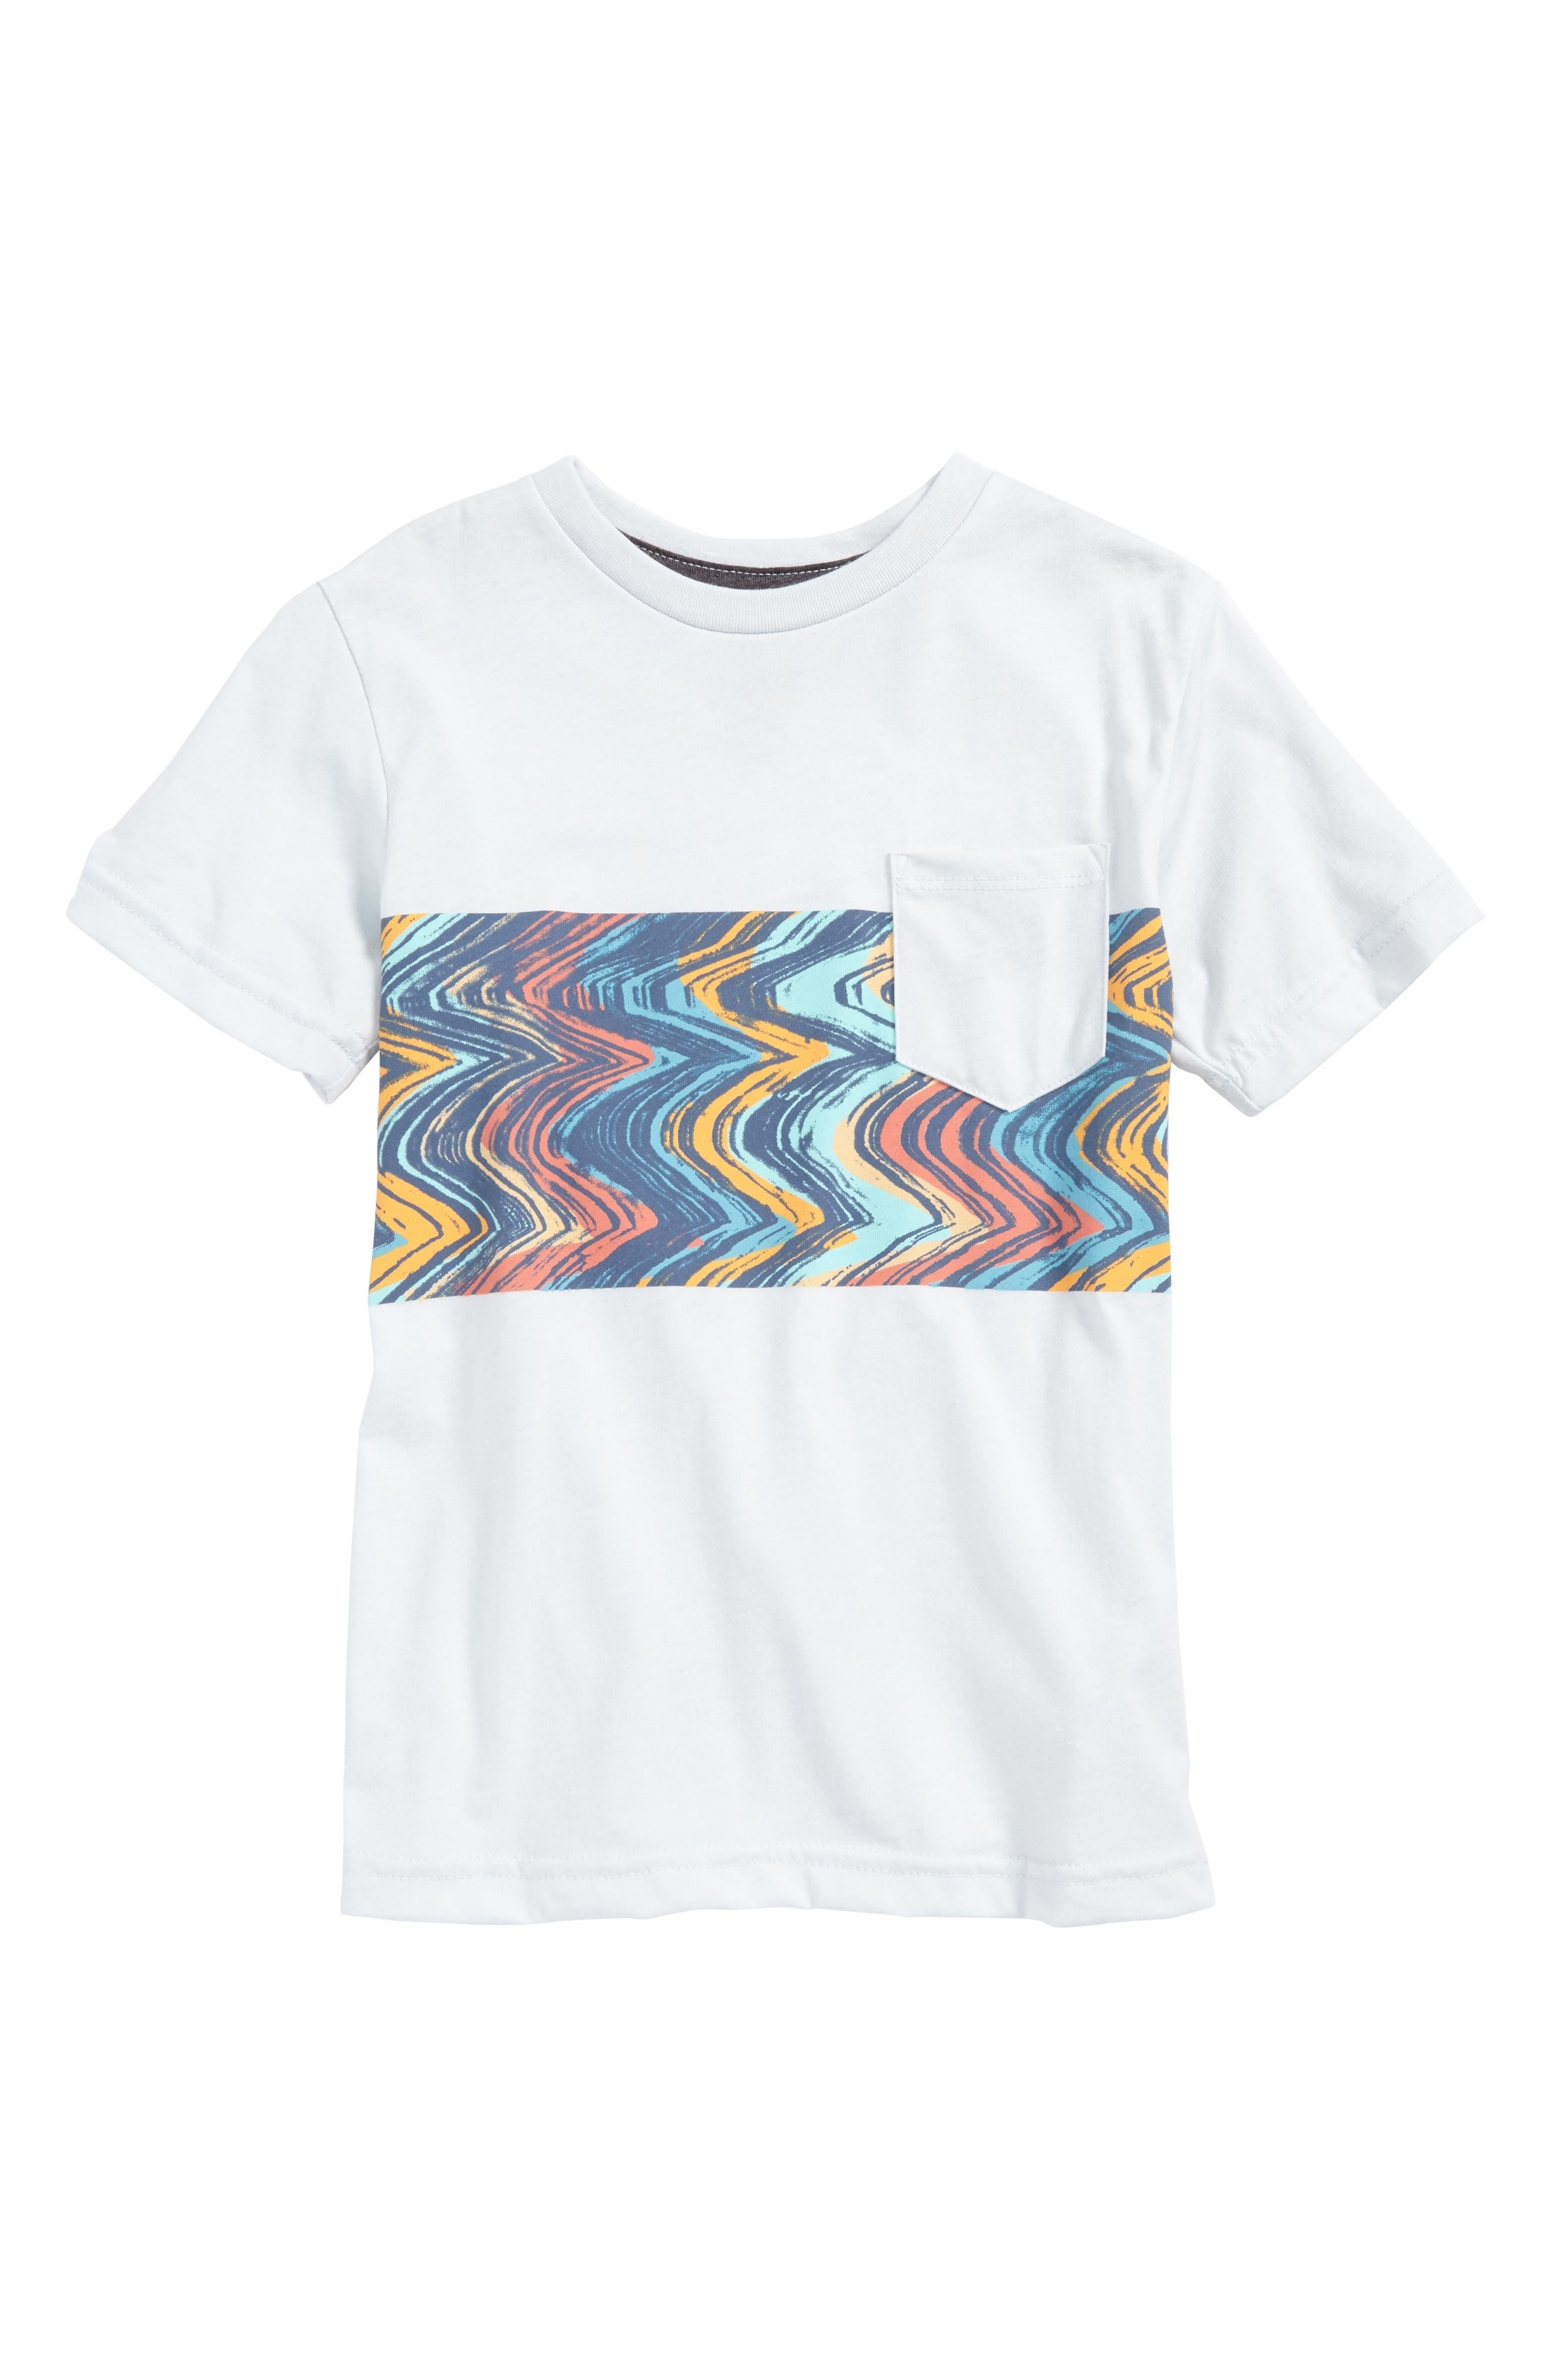 Alternate Image 1 Selected - Volcom Lo-Fi Colorblock Pocket T-Shirt (Toddler Boys & Little Boys)